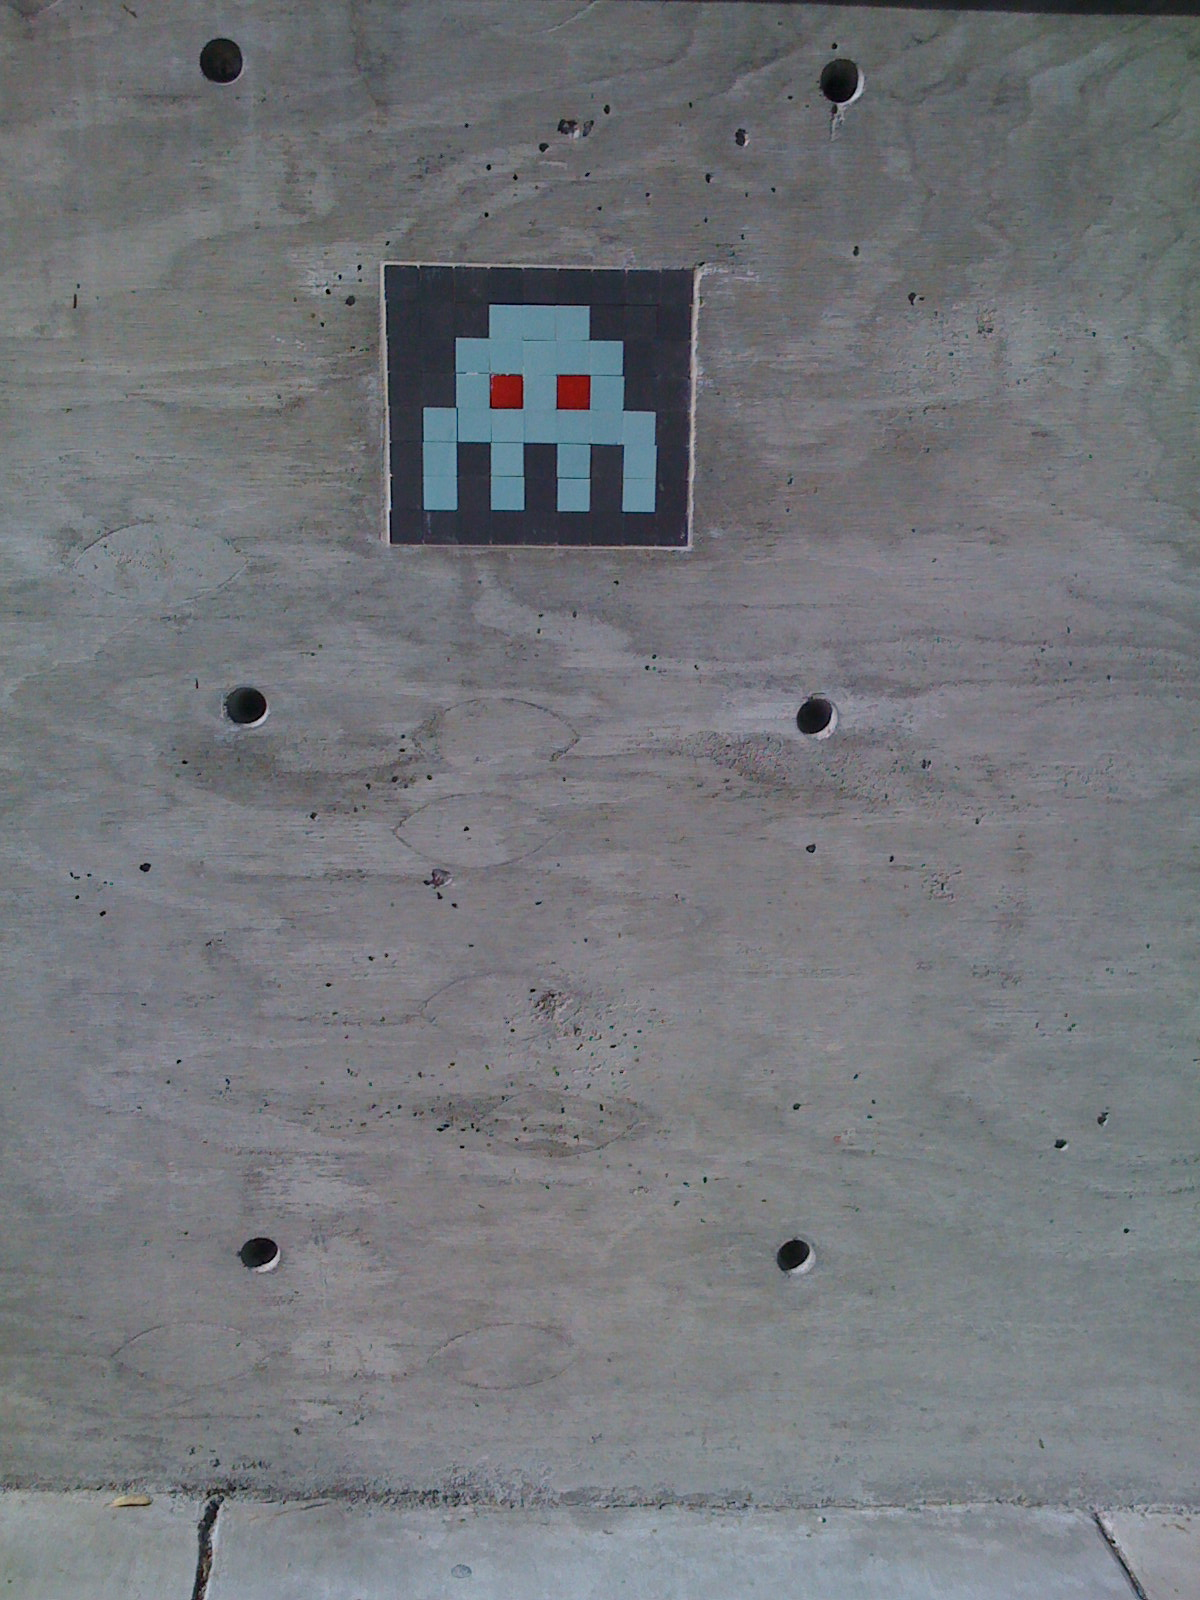 space invaders tiles